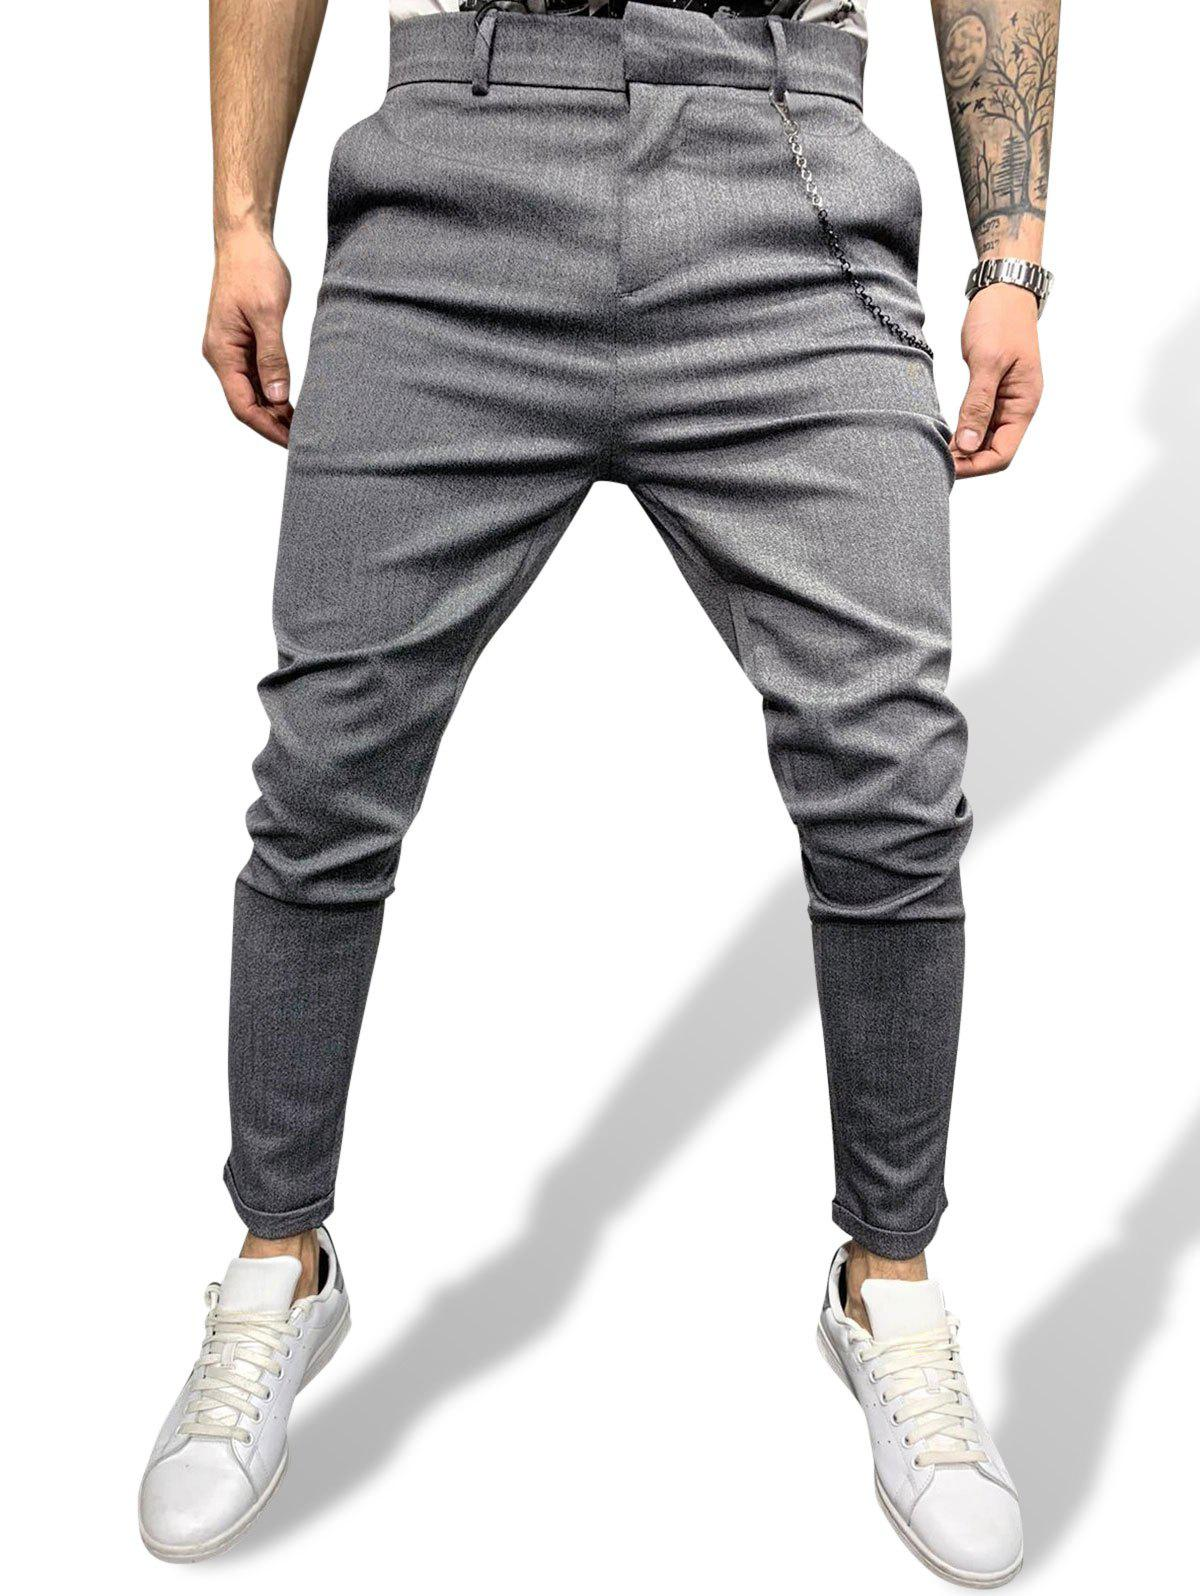 Chain Detail Casual Work Pants - GRAY L